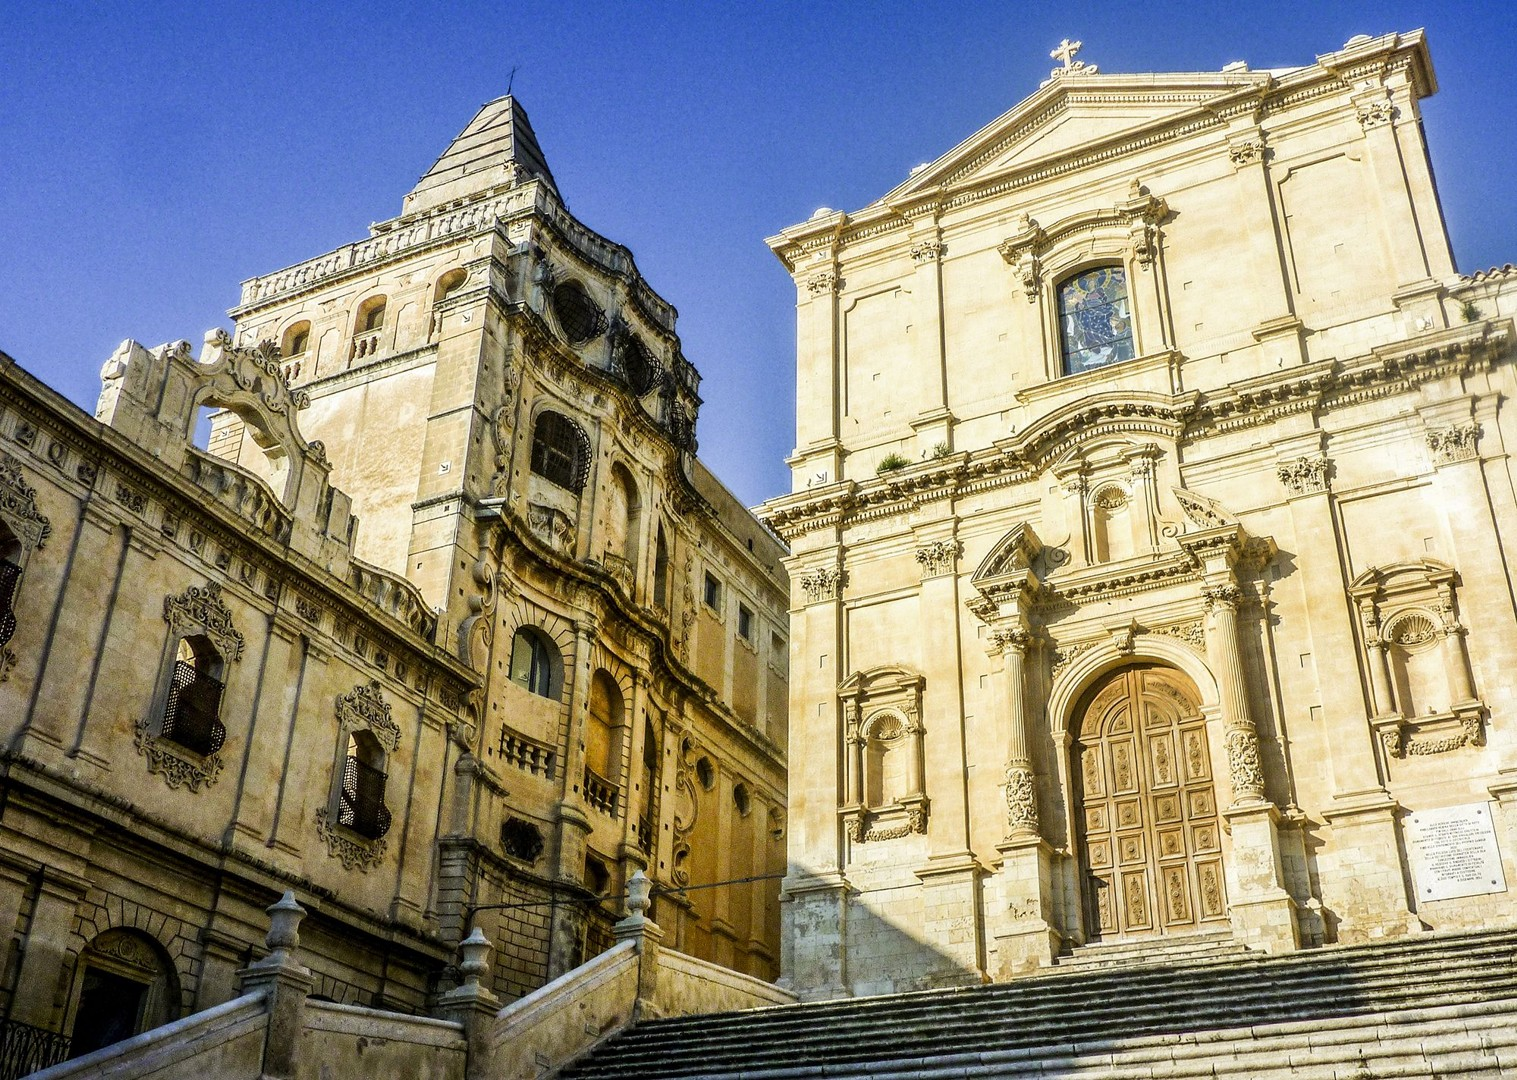 baroque-architecture-sicily-italy-modica-buildings.jpg - Italy - Sicily - Self-Guided Leisure Cycling Holiday - Leisure Cycling